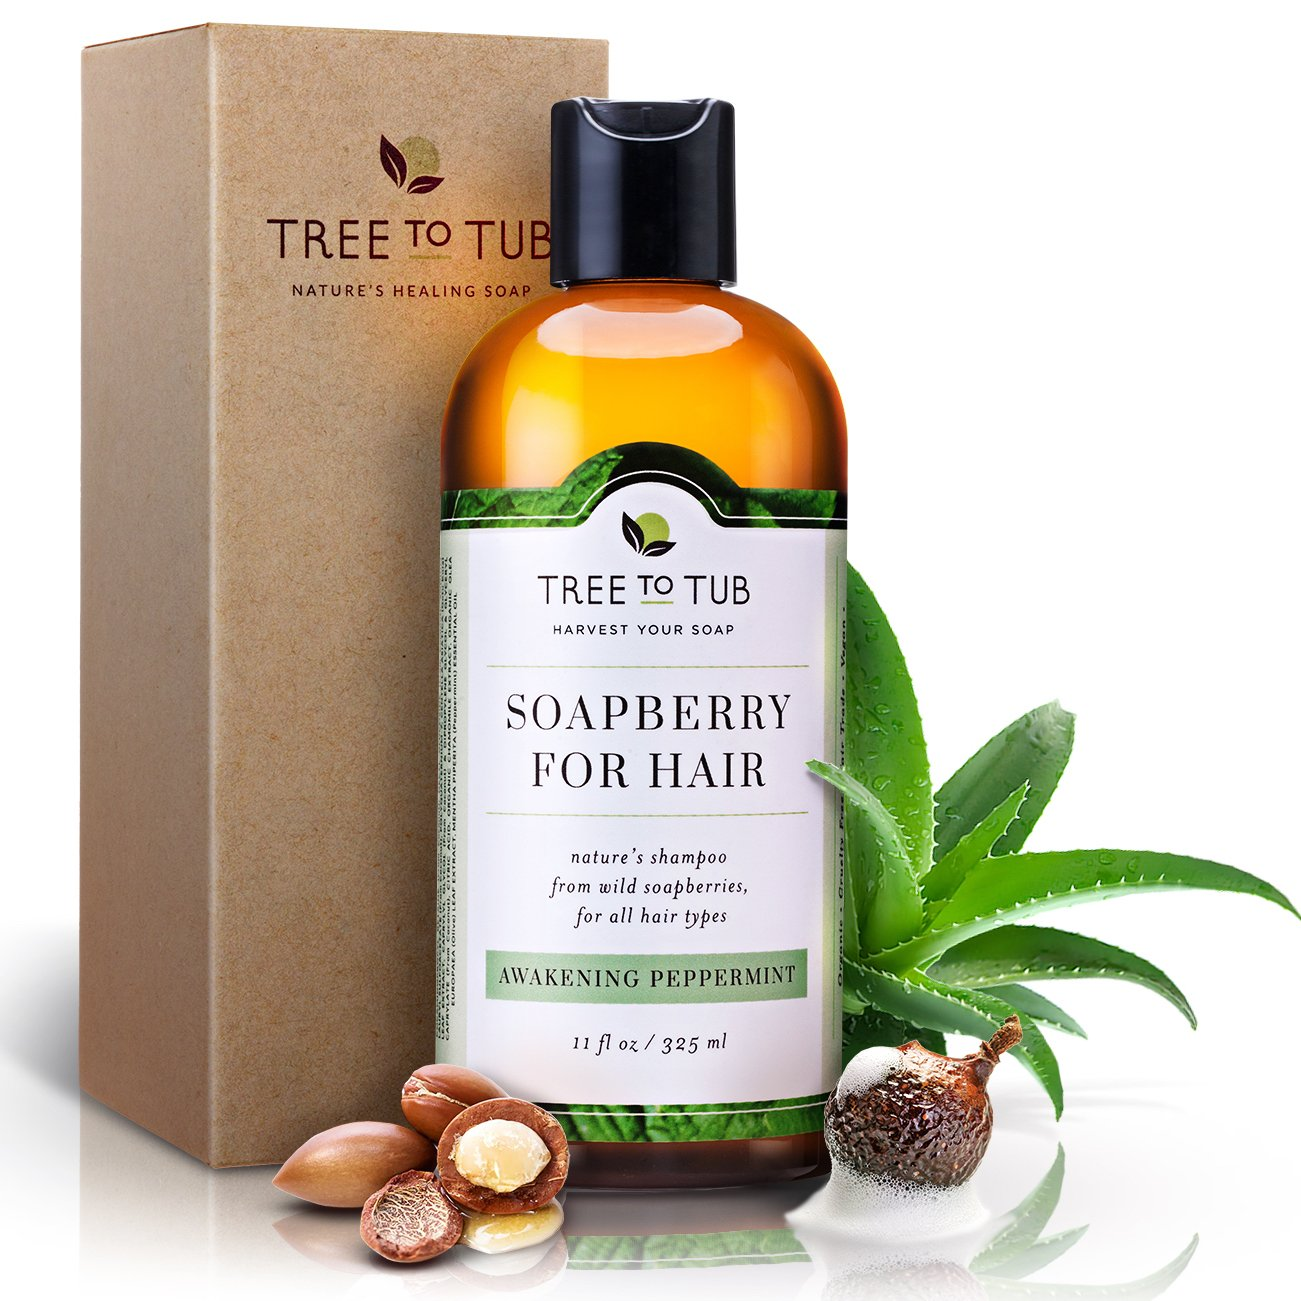 Real, Organic Shampoo For Oily Hair, The Only pH 5.5 Balanced Peppermint Scalp Shampoo For Sensitive Skin – Women And Mens Shampoo With Fresh Eco-Friendly Wild Soapberries, Natural Hair Shampoo.